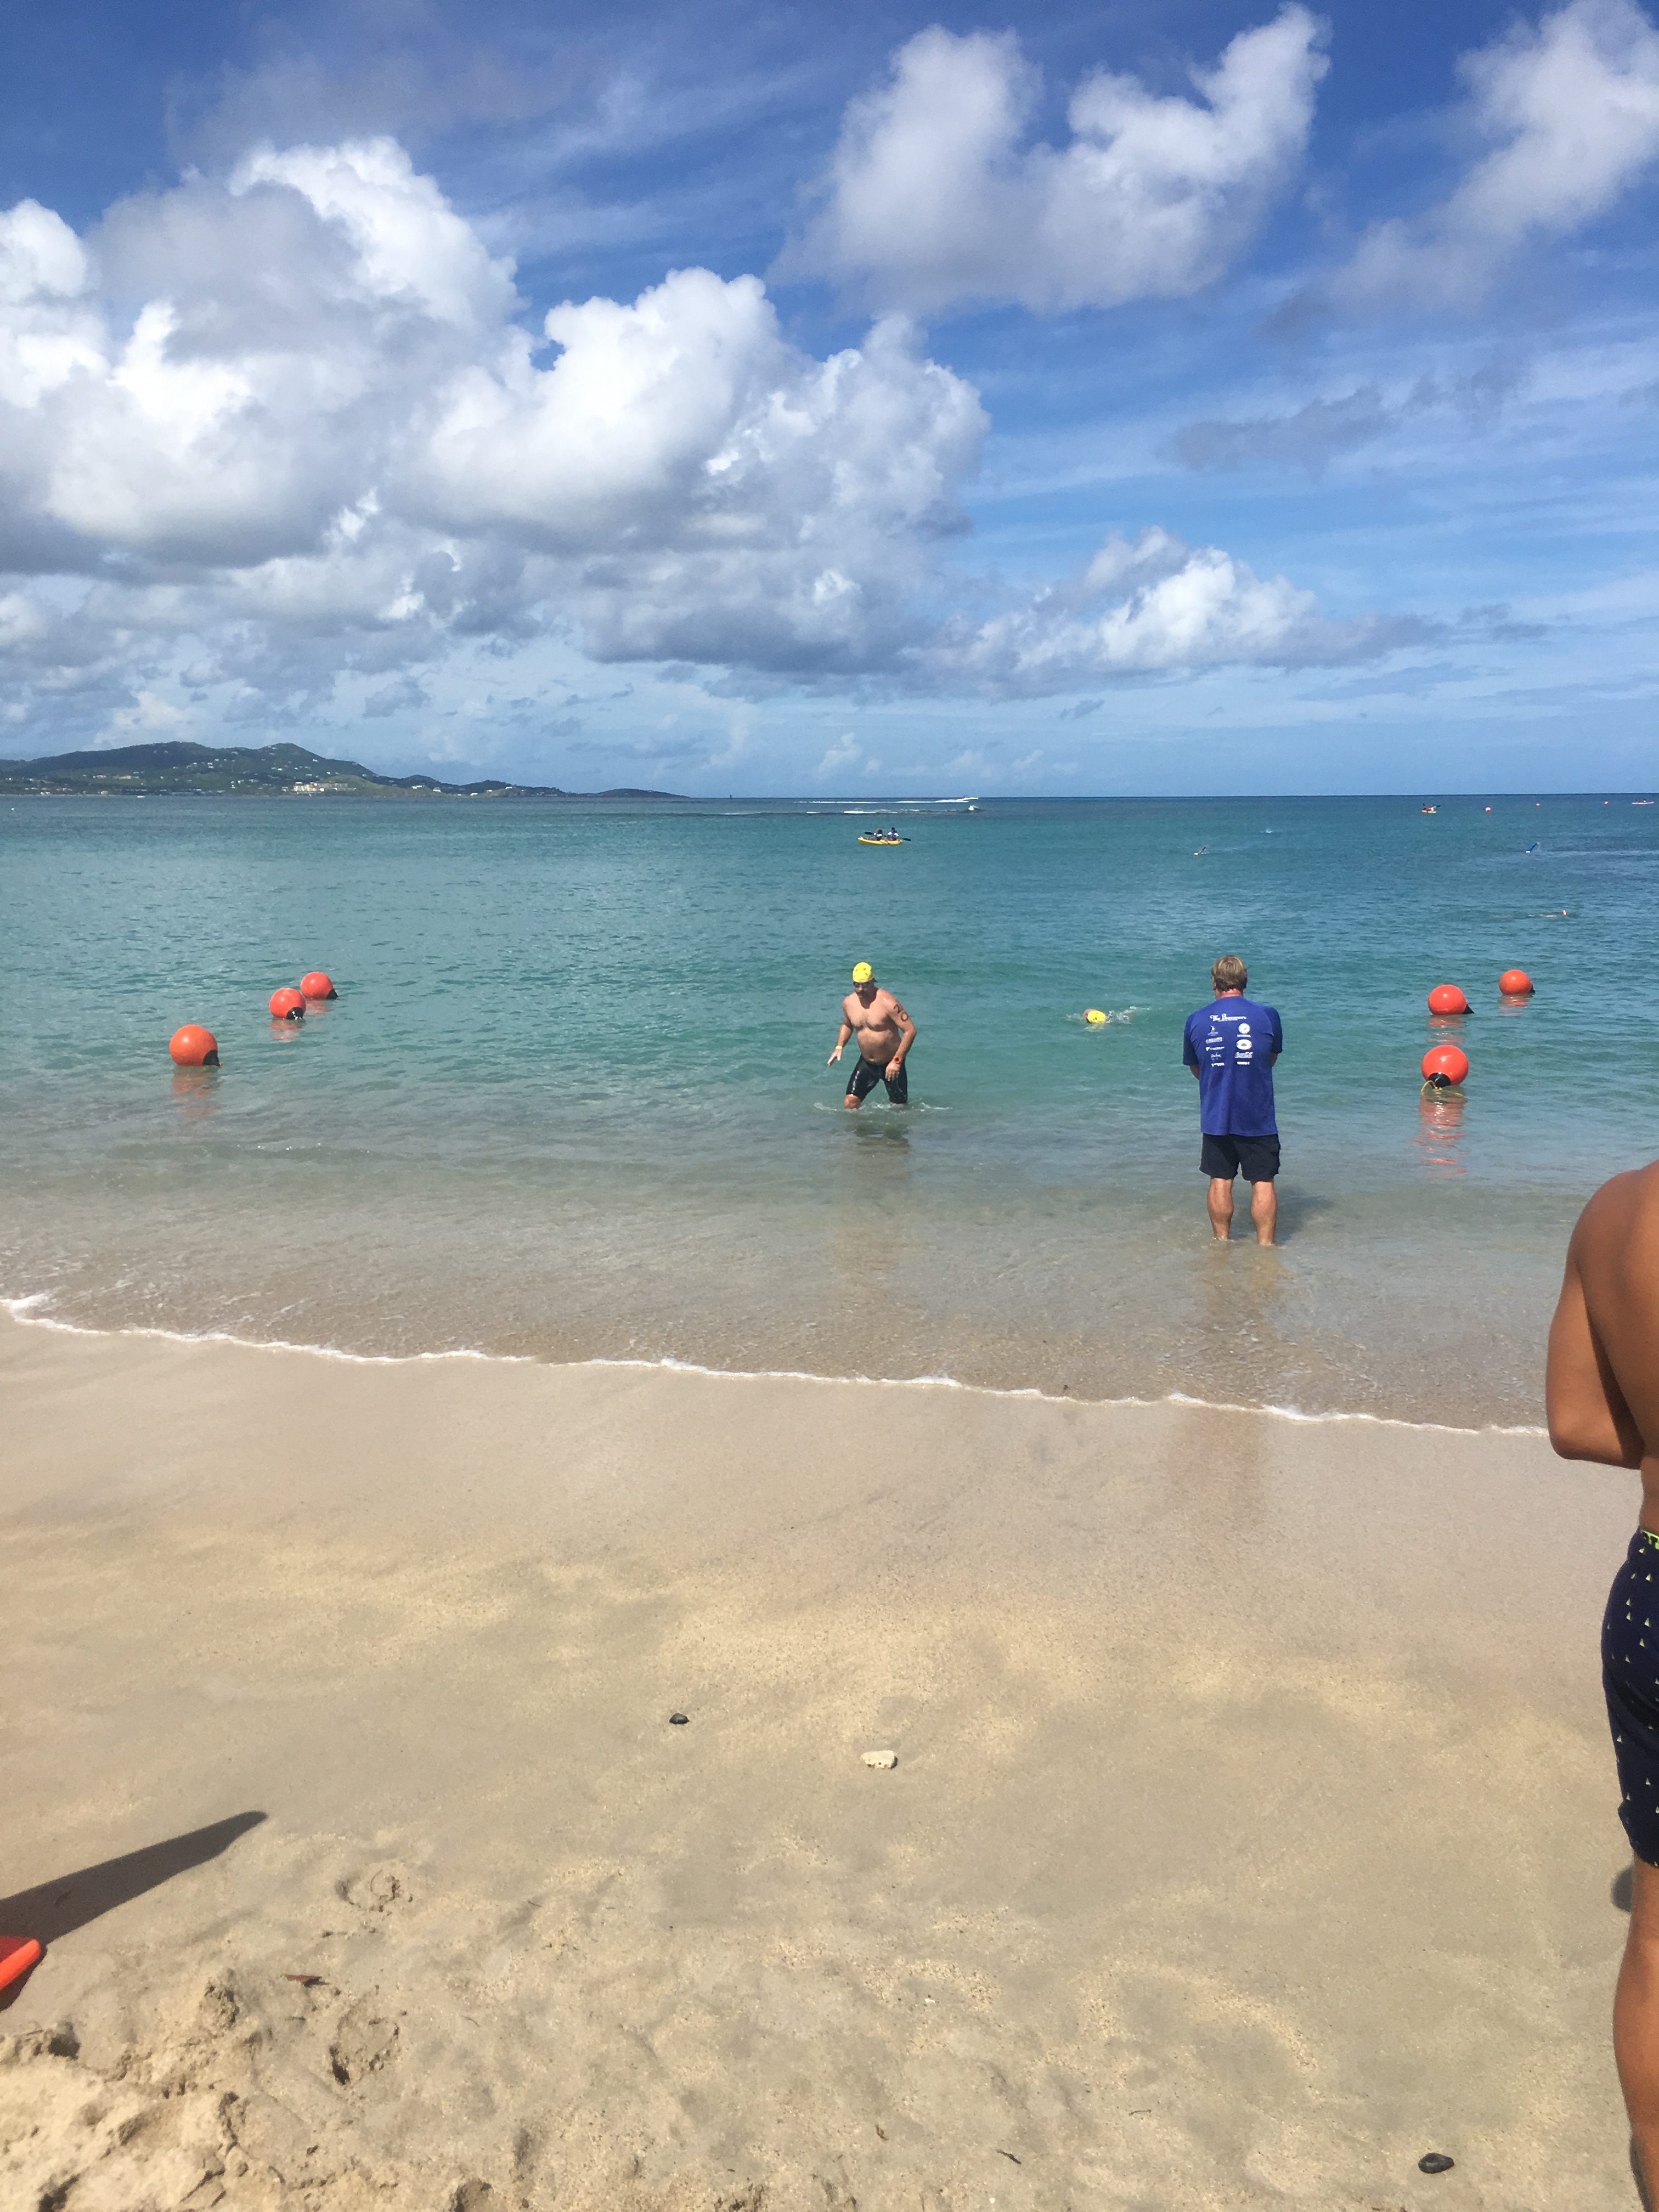 Still Time To Support The Race To Recovery On St. Croix